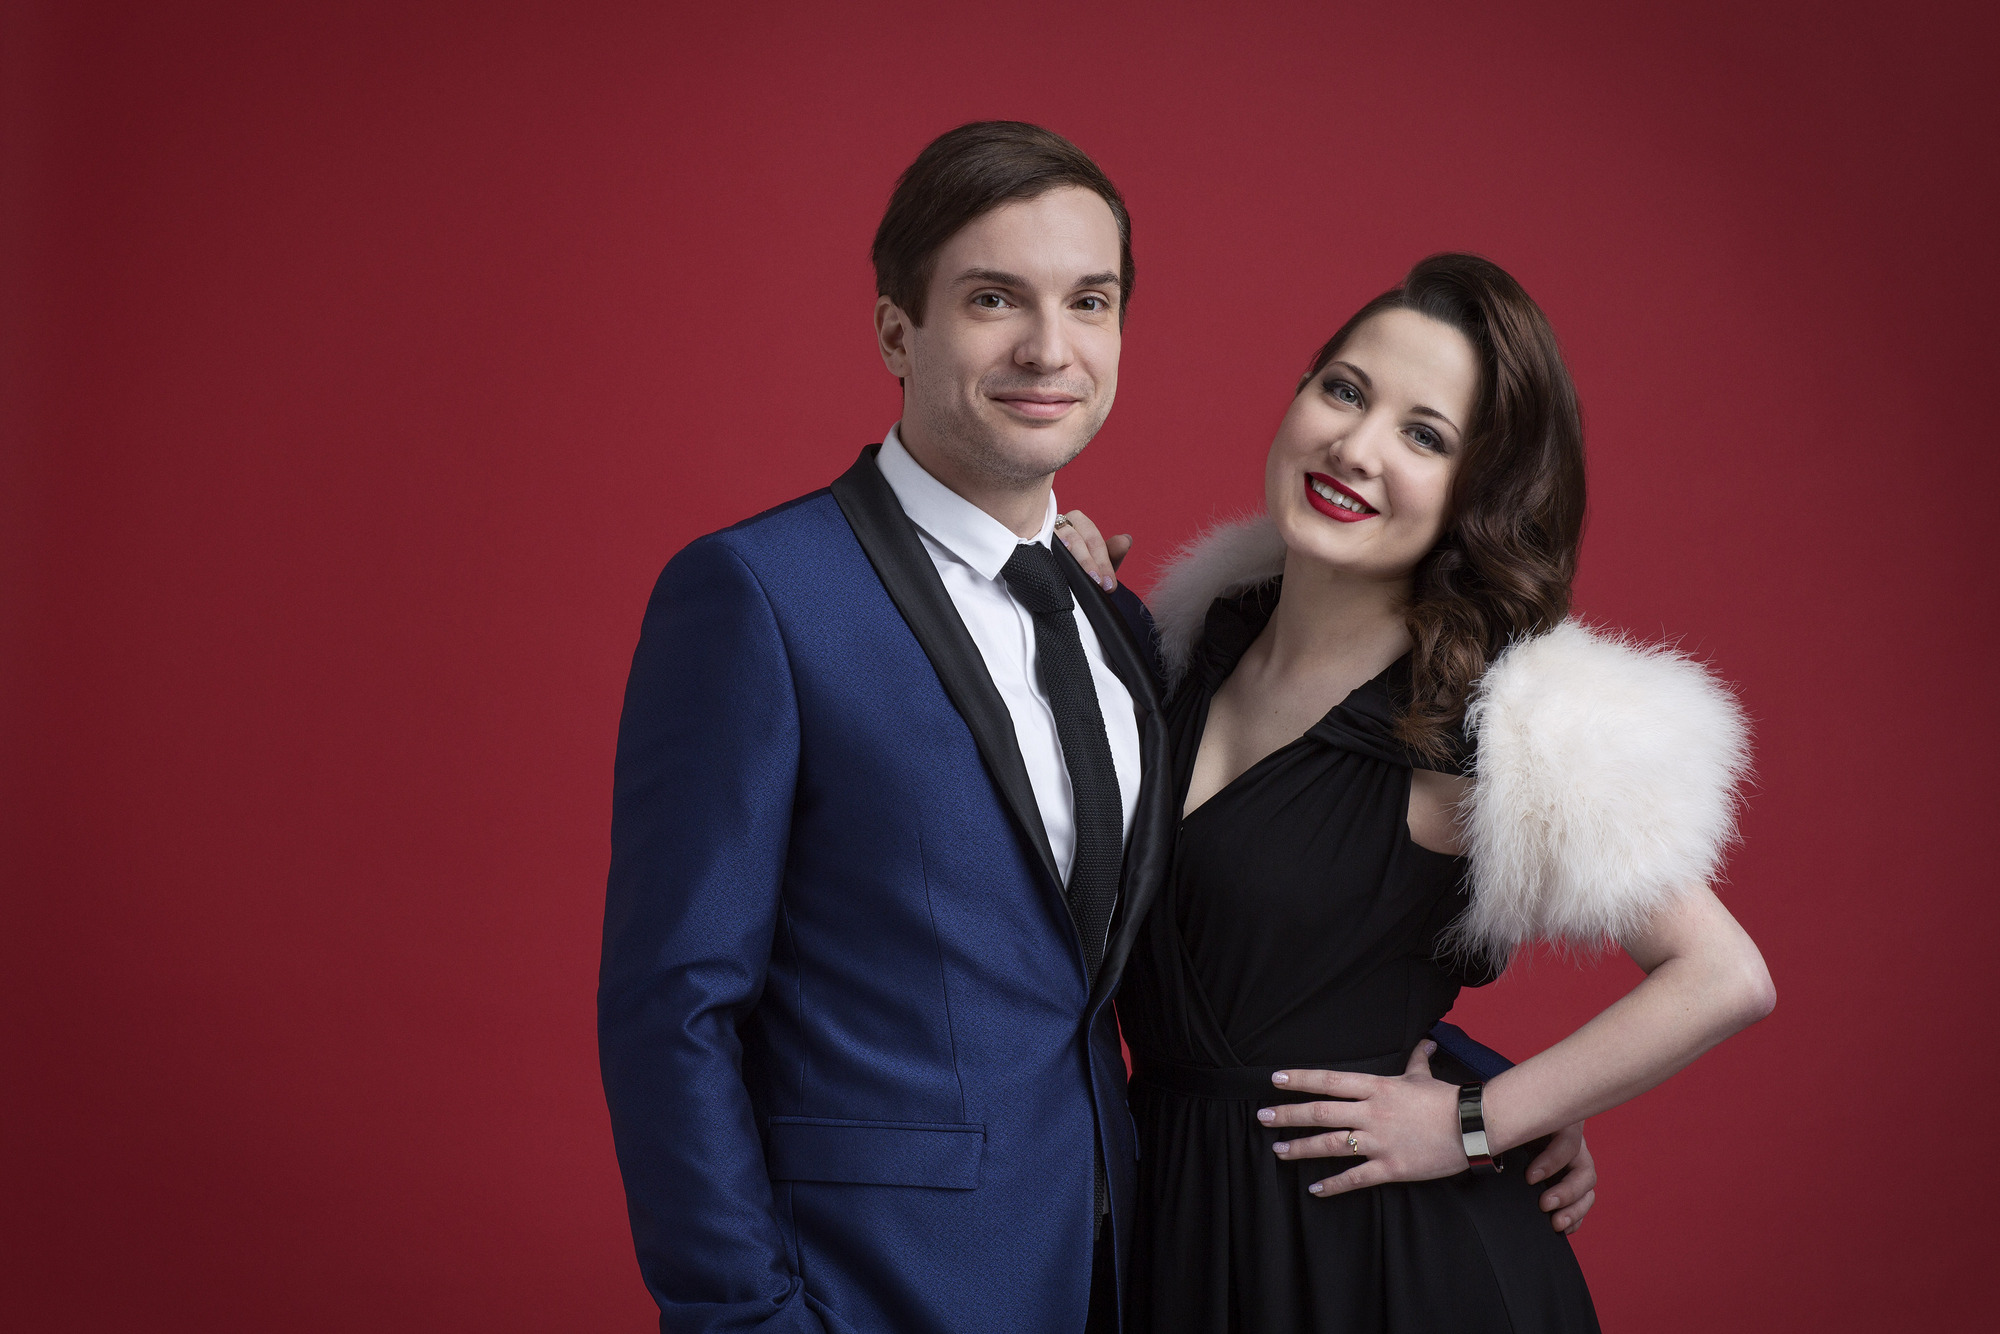 WARNING: Embargoed for publication until 07/03/2015 - Programme Name: Eurovision - TX: 23/05/2015 - Episode: n/a (No. 1) - Picture Shows: **EMBARGOED FOR PUBLICATION OR RELEASE UNTIL SAT 7TH MARCH AT 9.35PM** Electro Velvet - (C) BBC - Photographer: Sarah Dunn